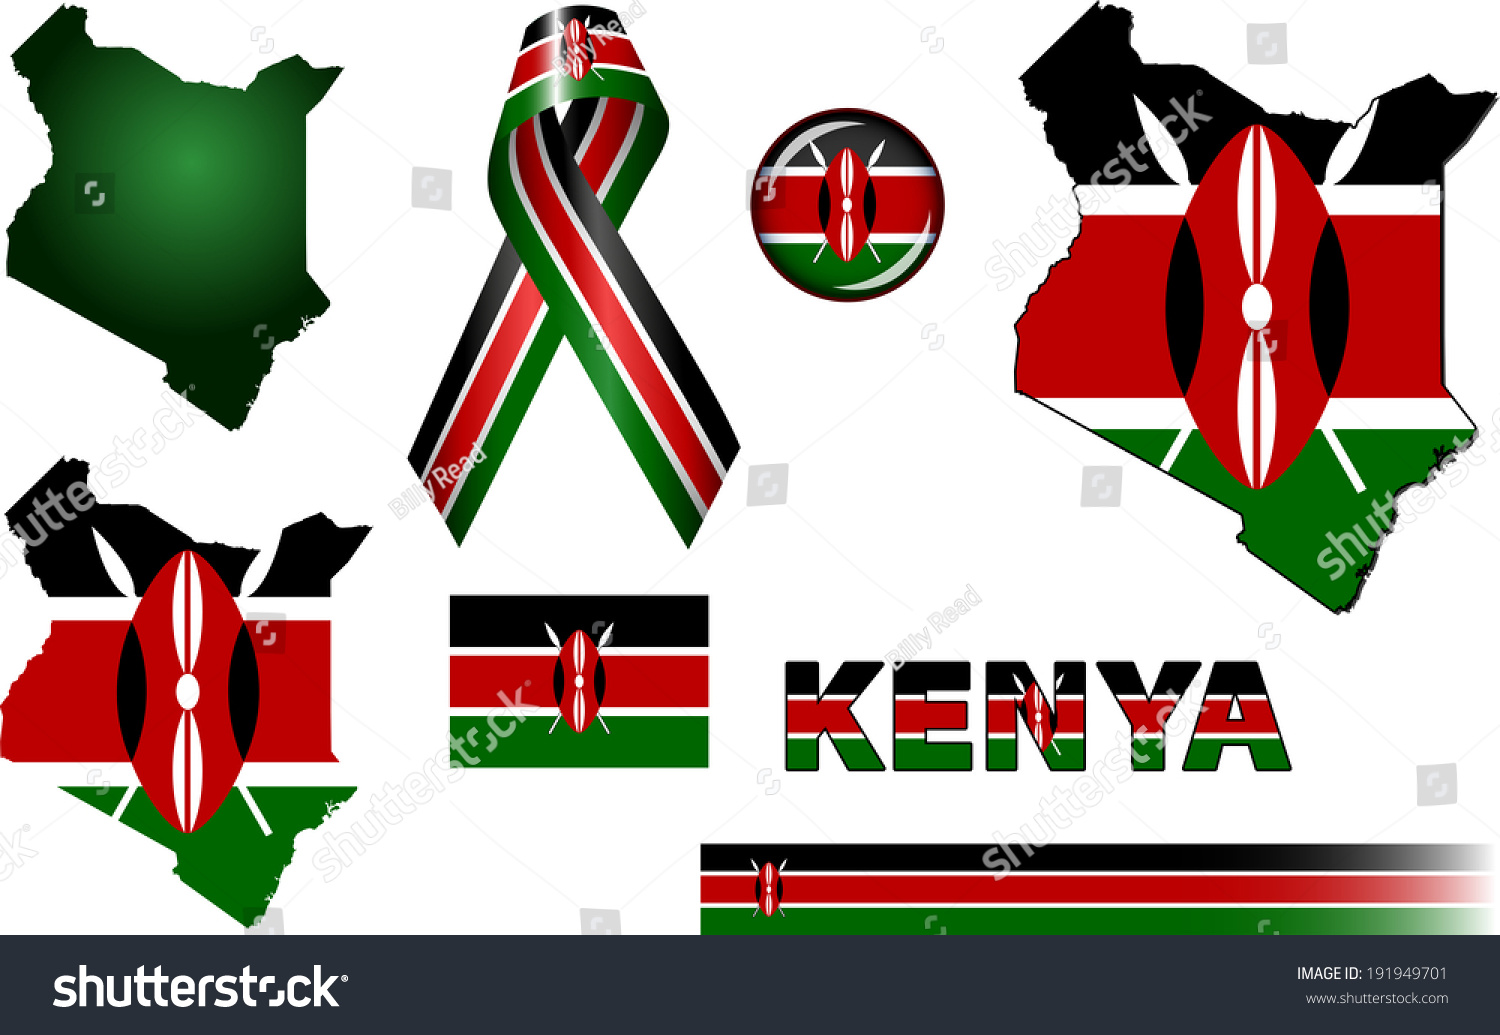 Kenya Icons Set Vector Graphic Icons Stock Vector Royalty Free